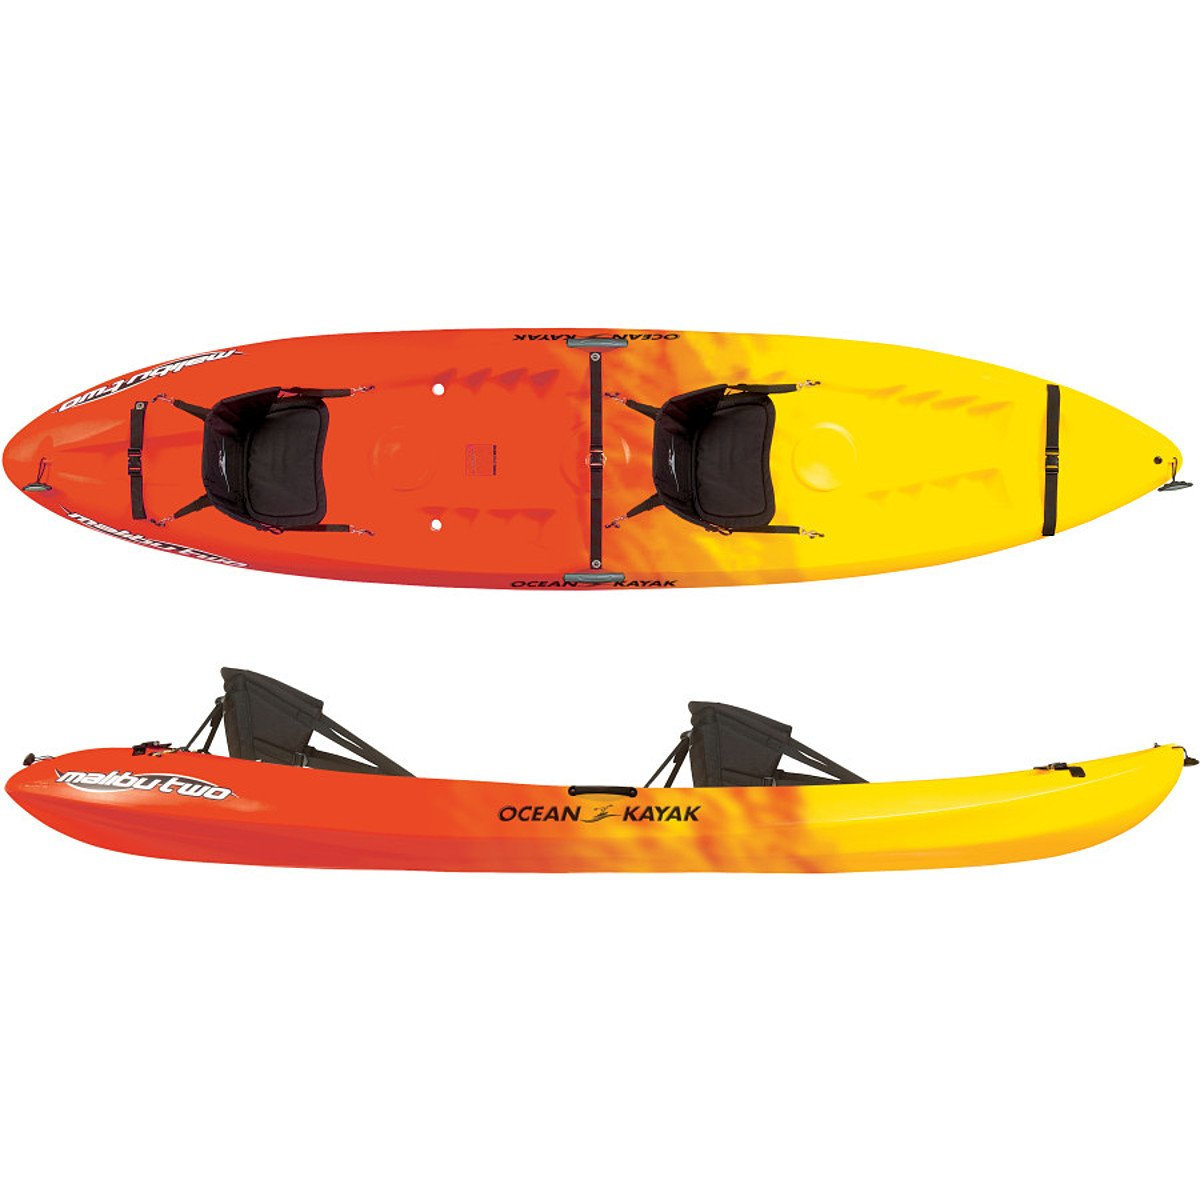 Ocean Kayak Malibu Two Tandem Sit-On-Top Recreational Kayak (Sunrise, 12-Feet) by Ocean Kayak